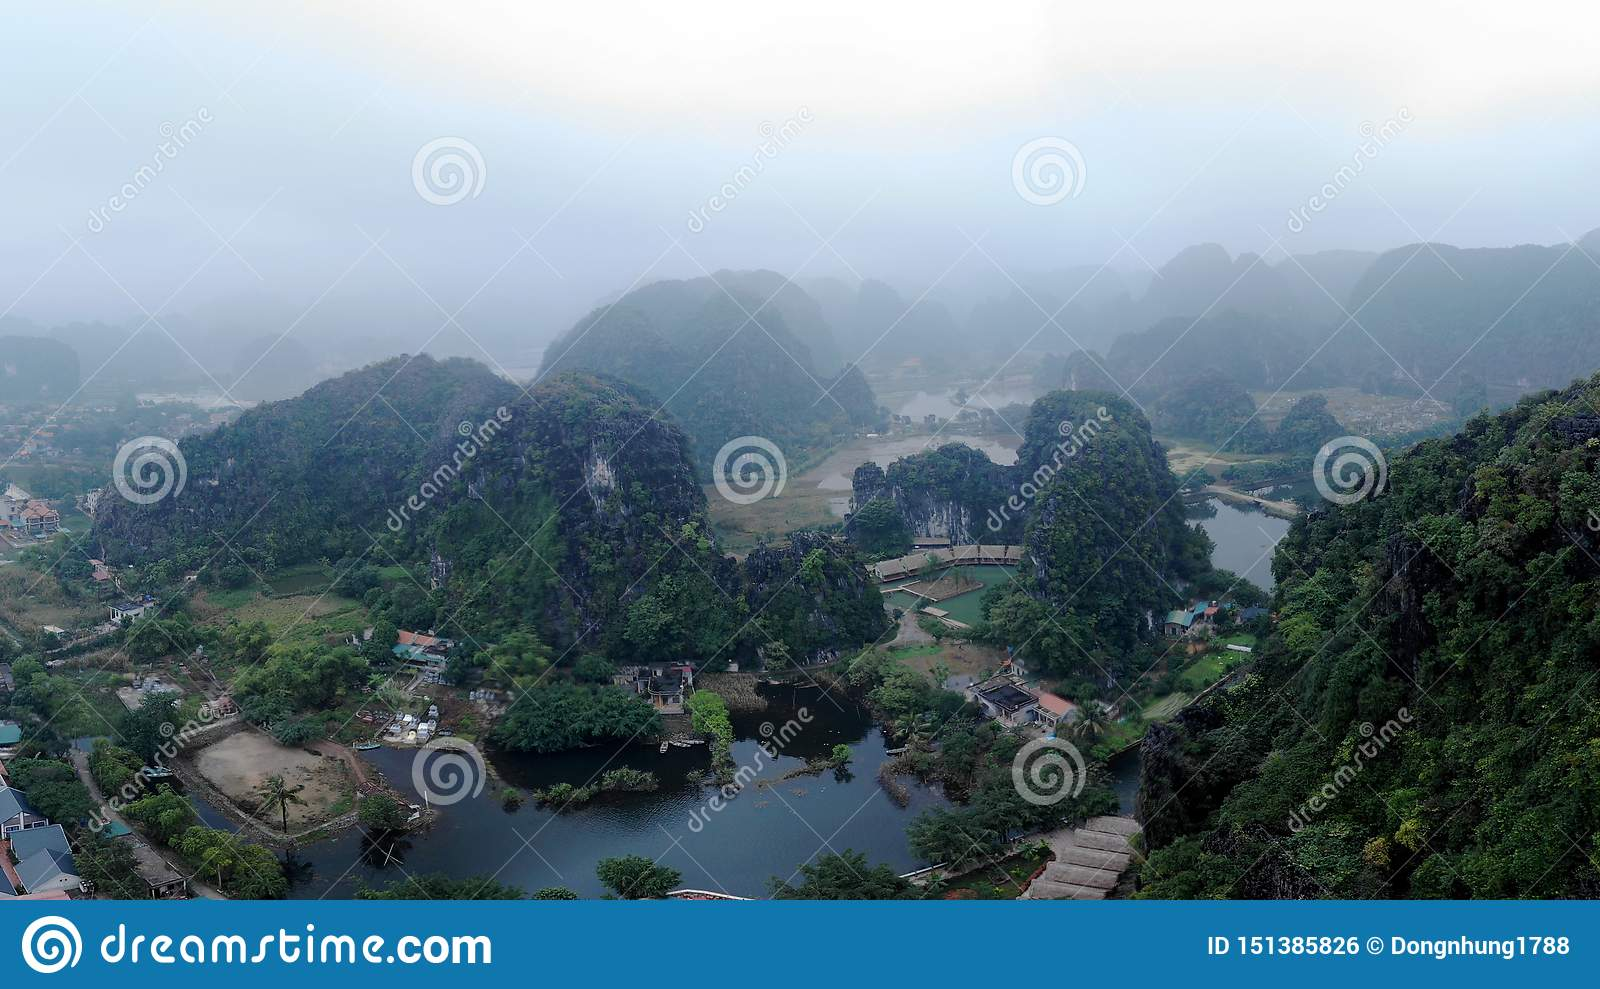 The majestic mountains landscape with the surrounding river